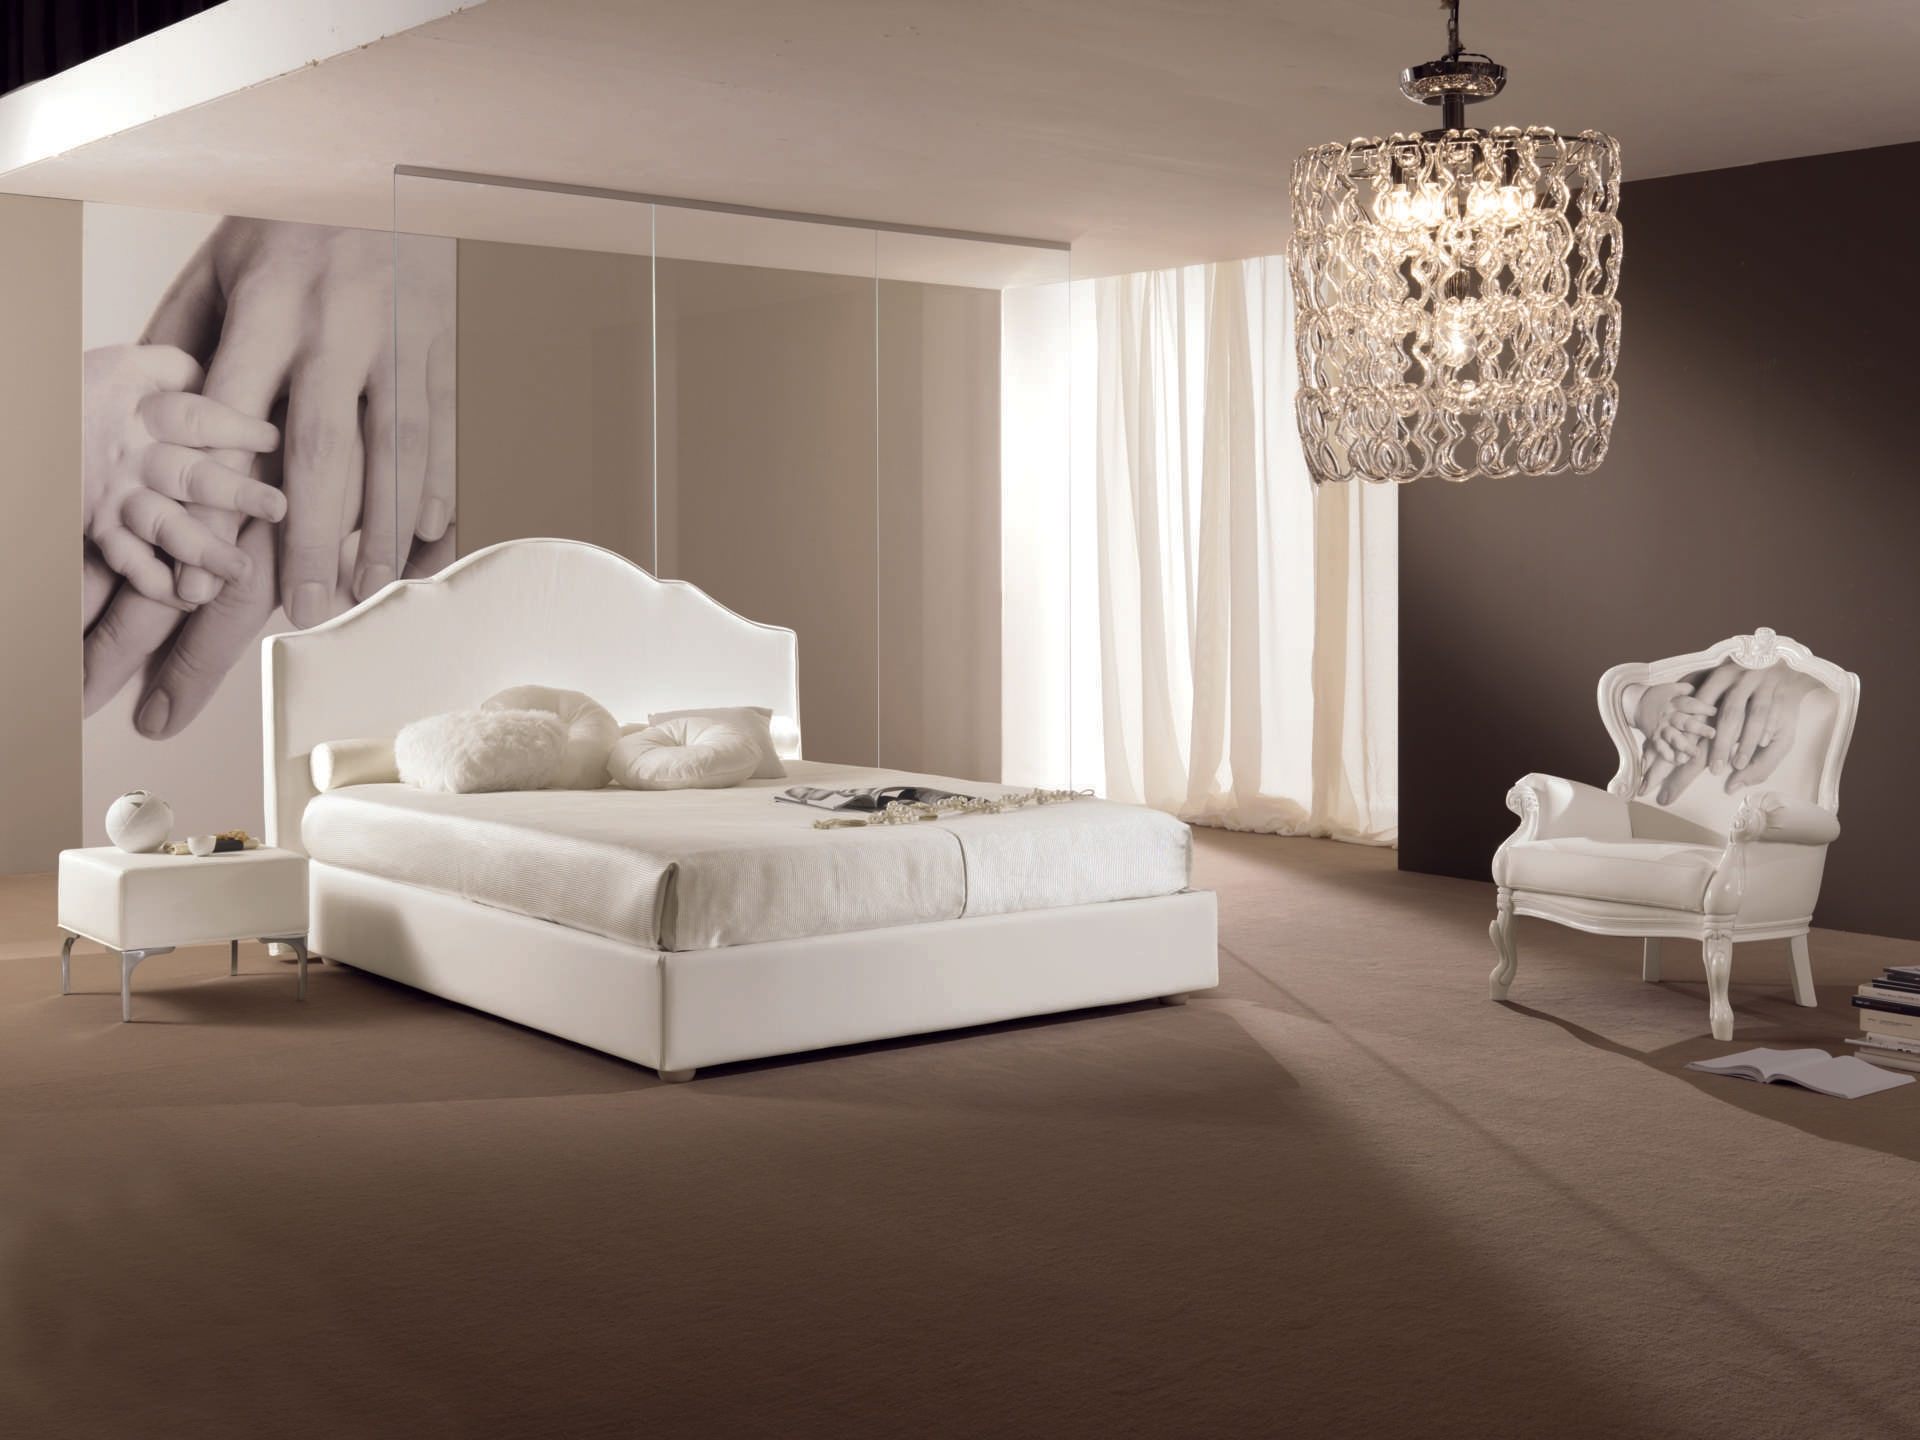 chambre coucher avec lit 2 places design pure piermaria so nuit. Black Bedroom Furniture Sets. Home Design Ideas